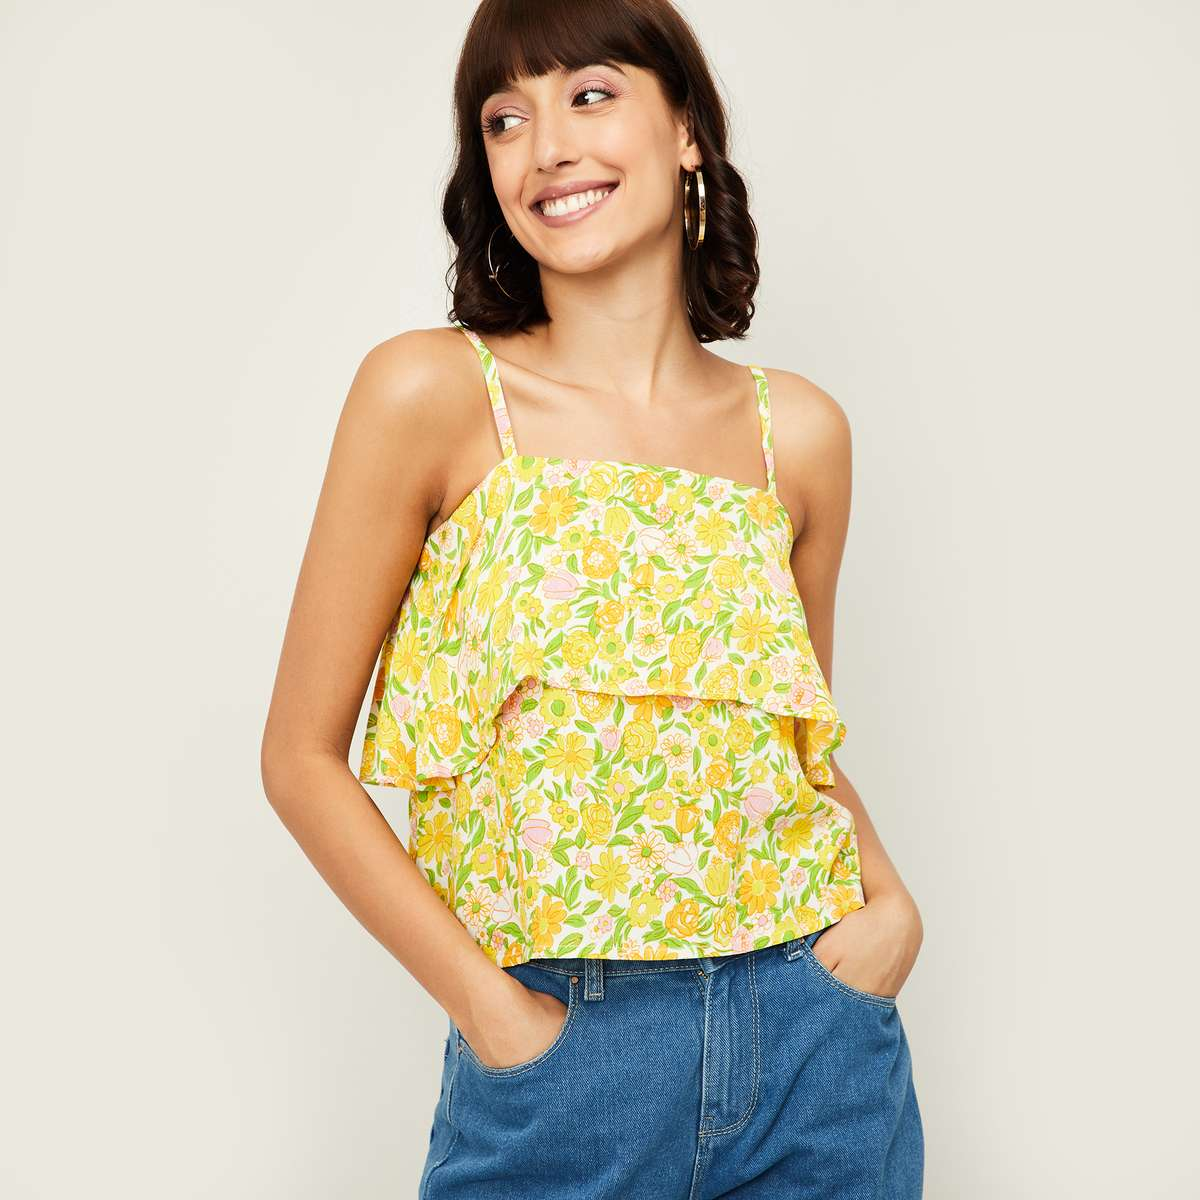 2.GINGER Women Floral Print Layered Spaghetti Top